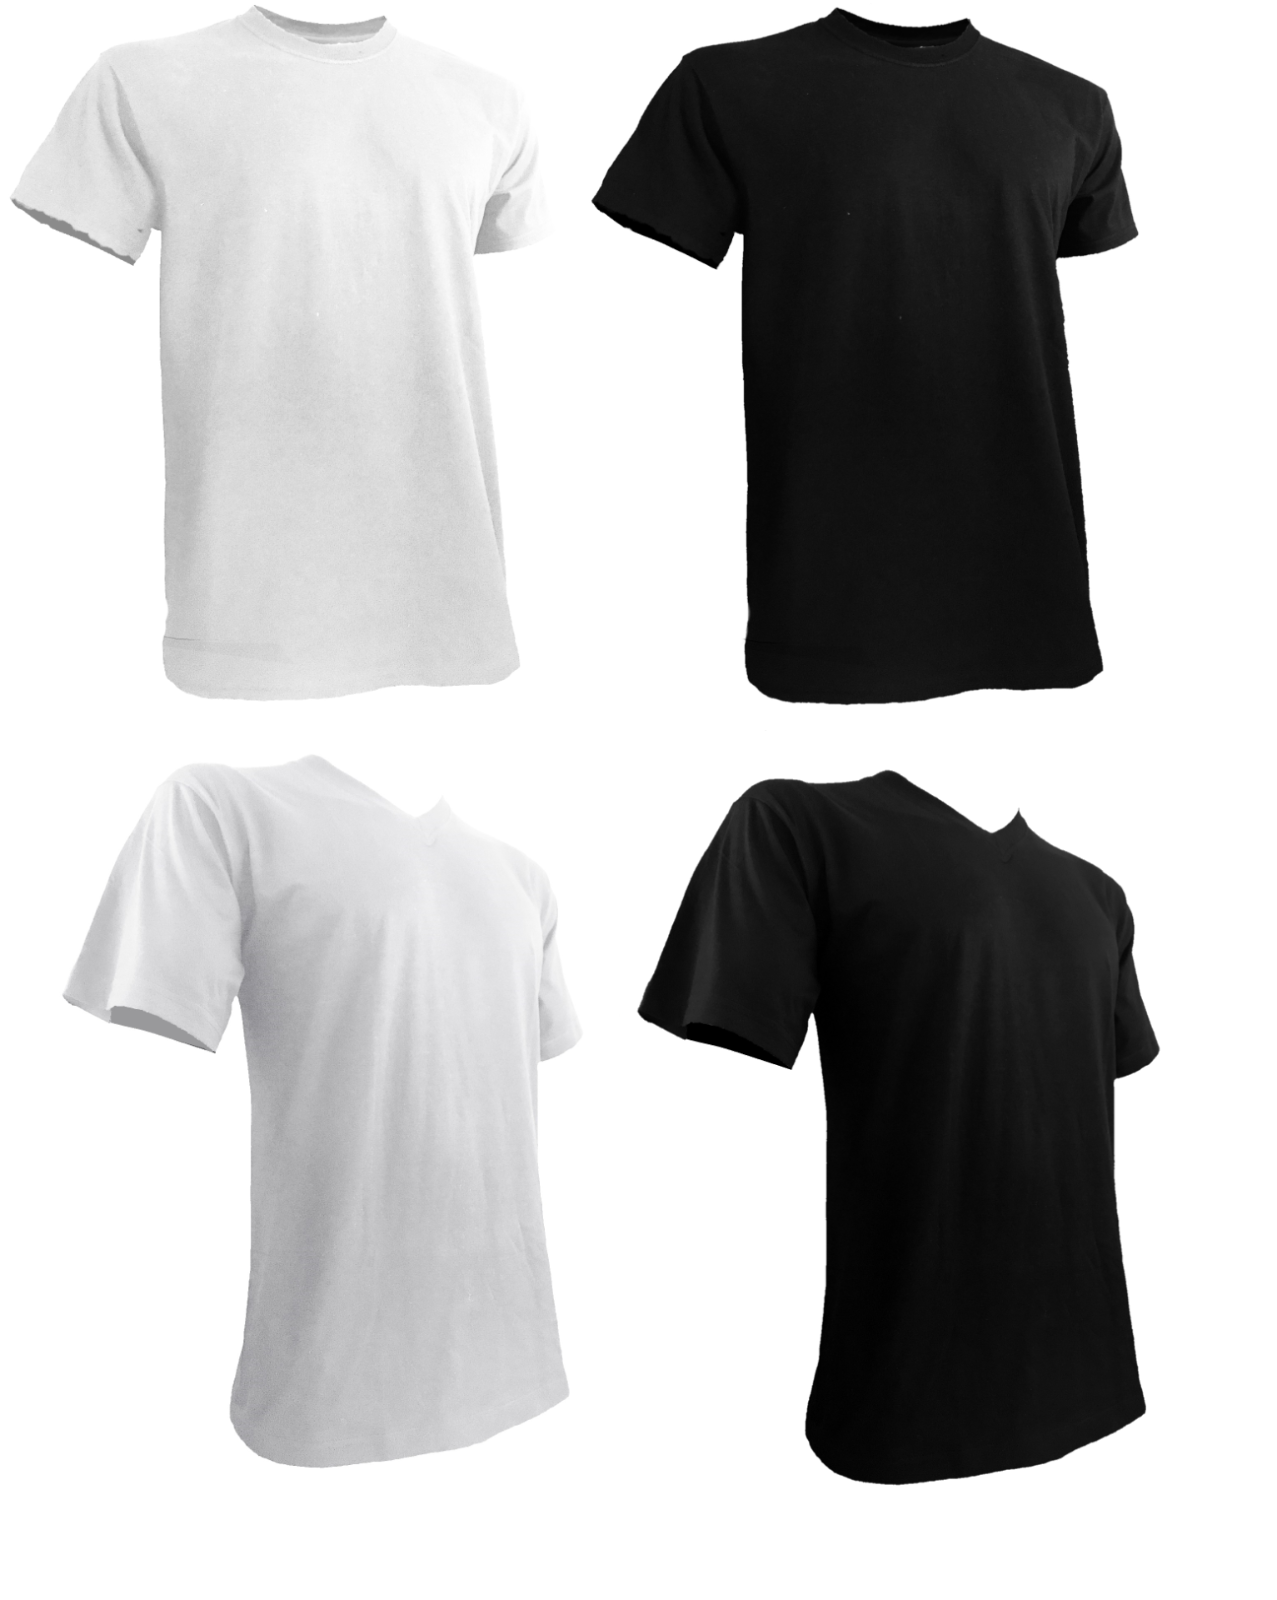 Styllion Big and Tall Mens Shirts  - ST to 4XLT - Mid Weight